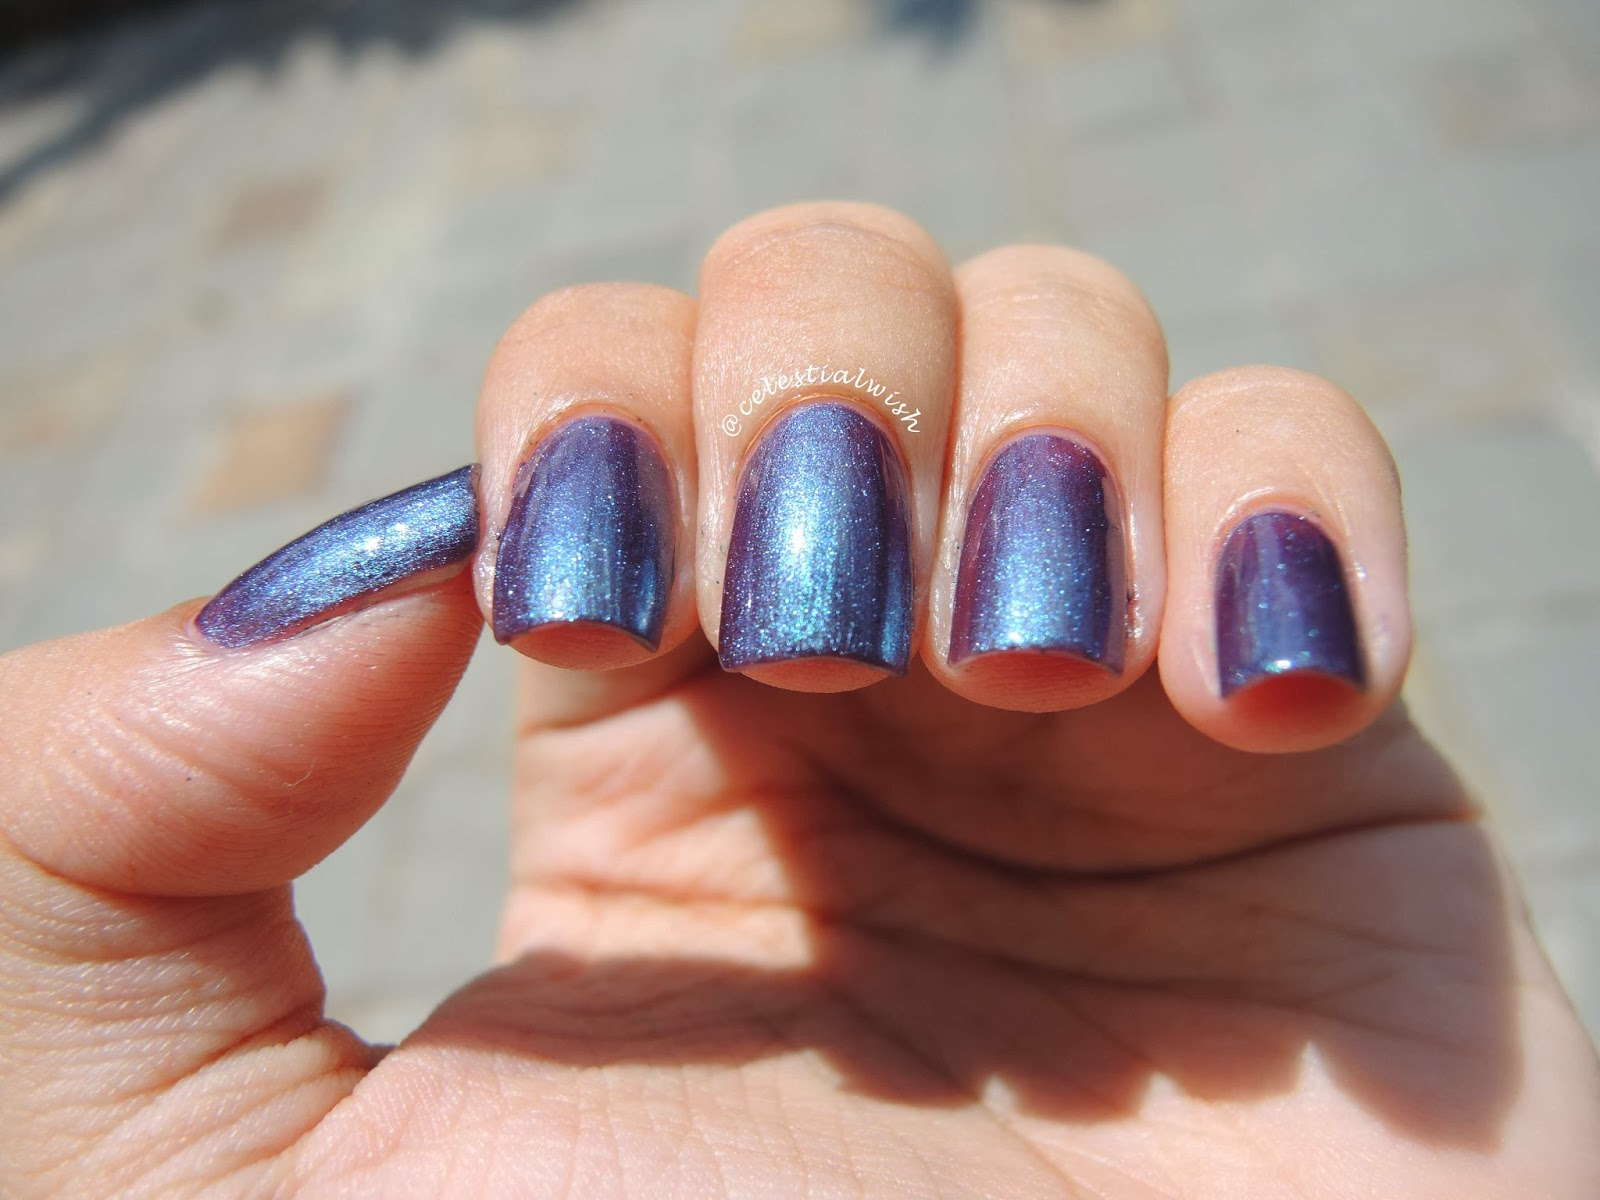 Enchantress nails lined in one straight row under the sun!